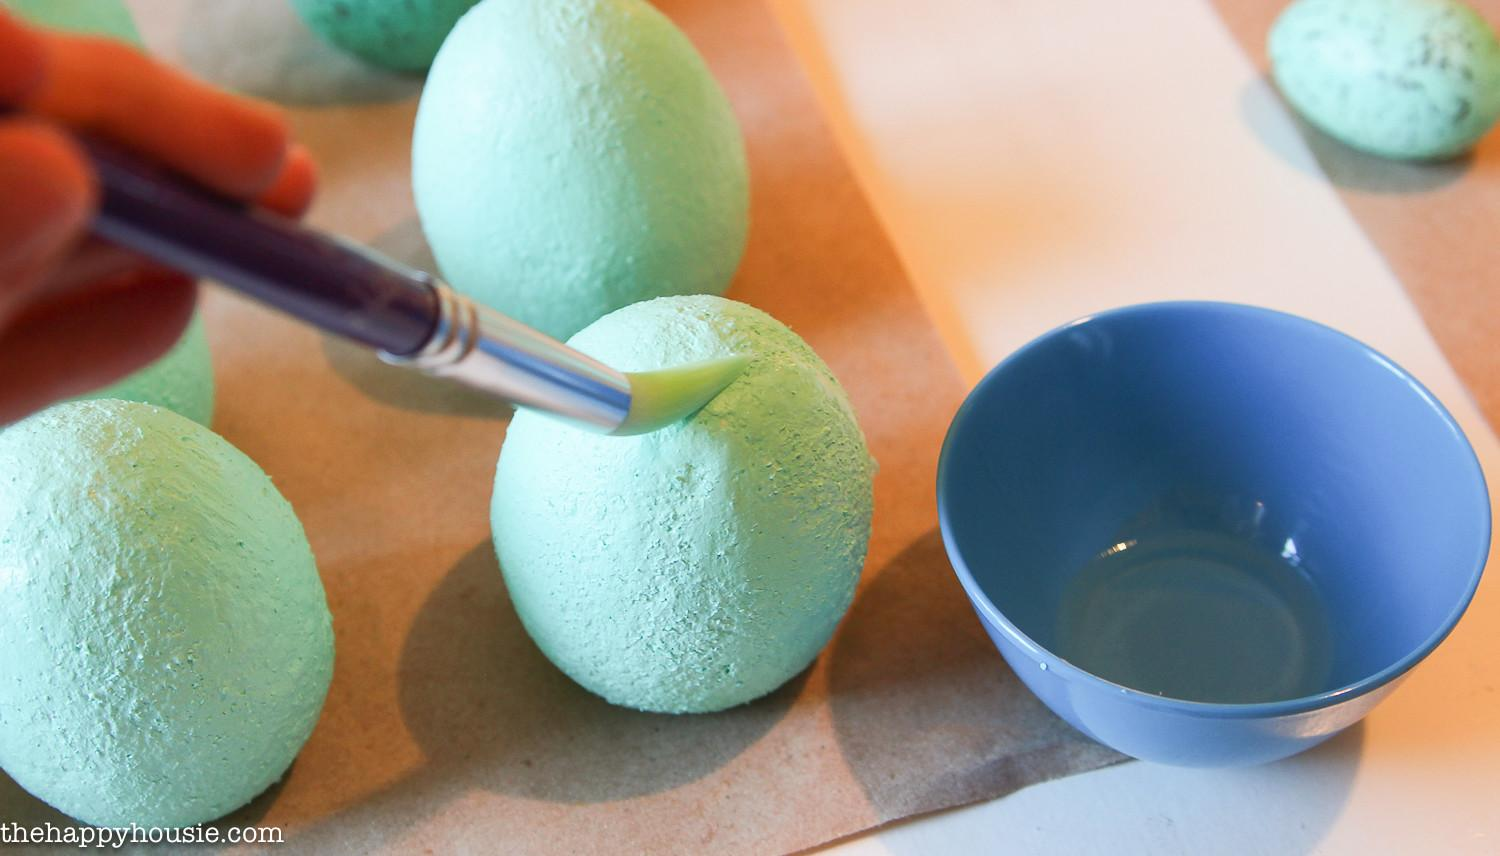 Diy Speckled Easter Egg Place Card Holders Happy Housie